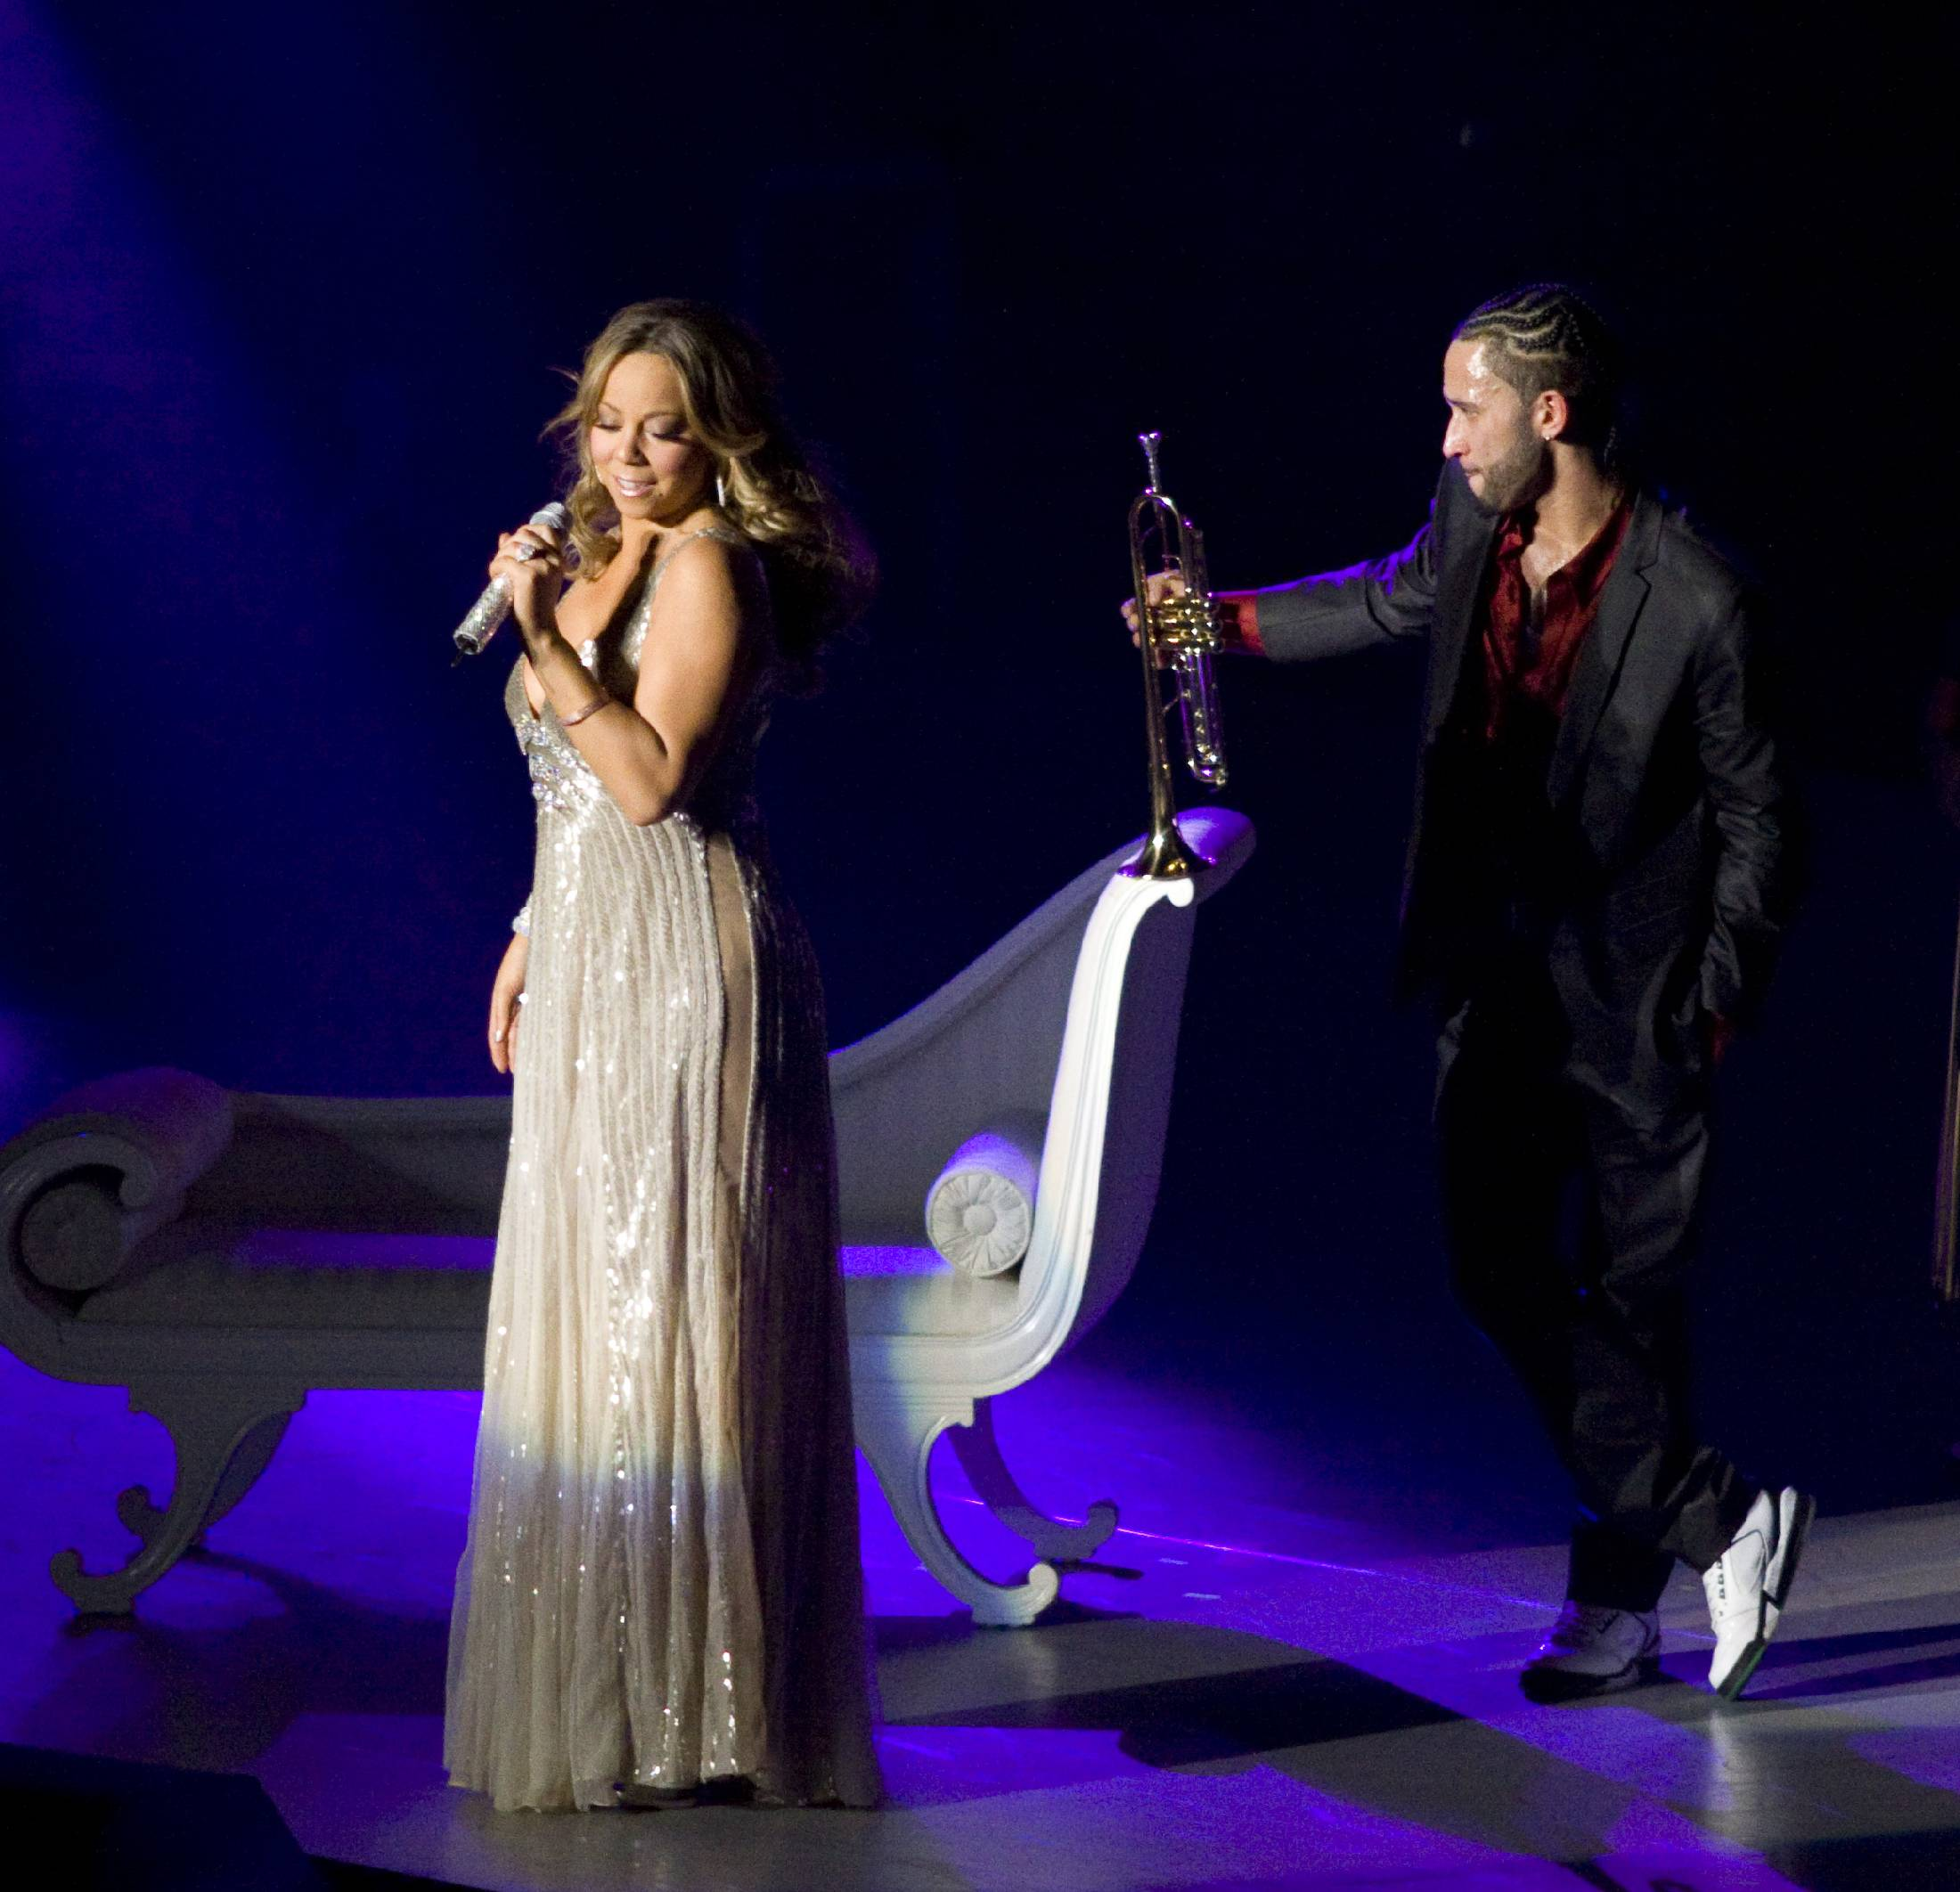 53427_Mariah_Carey_performs_at_Madison_Square_Garden_in_New_York_City-20_122_484lo.jpg